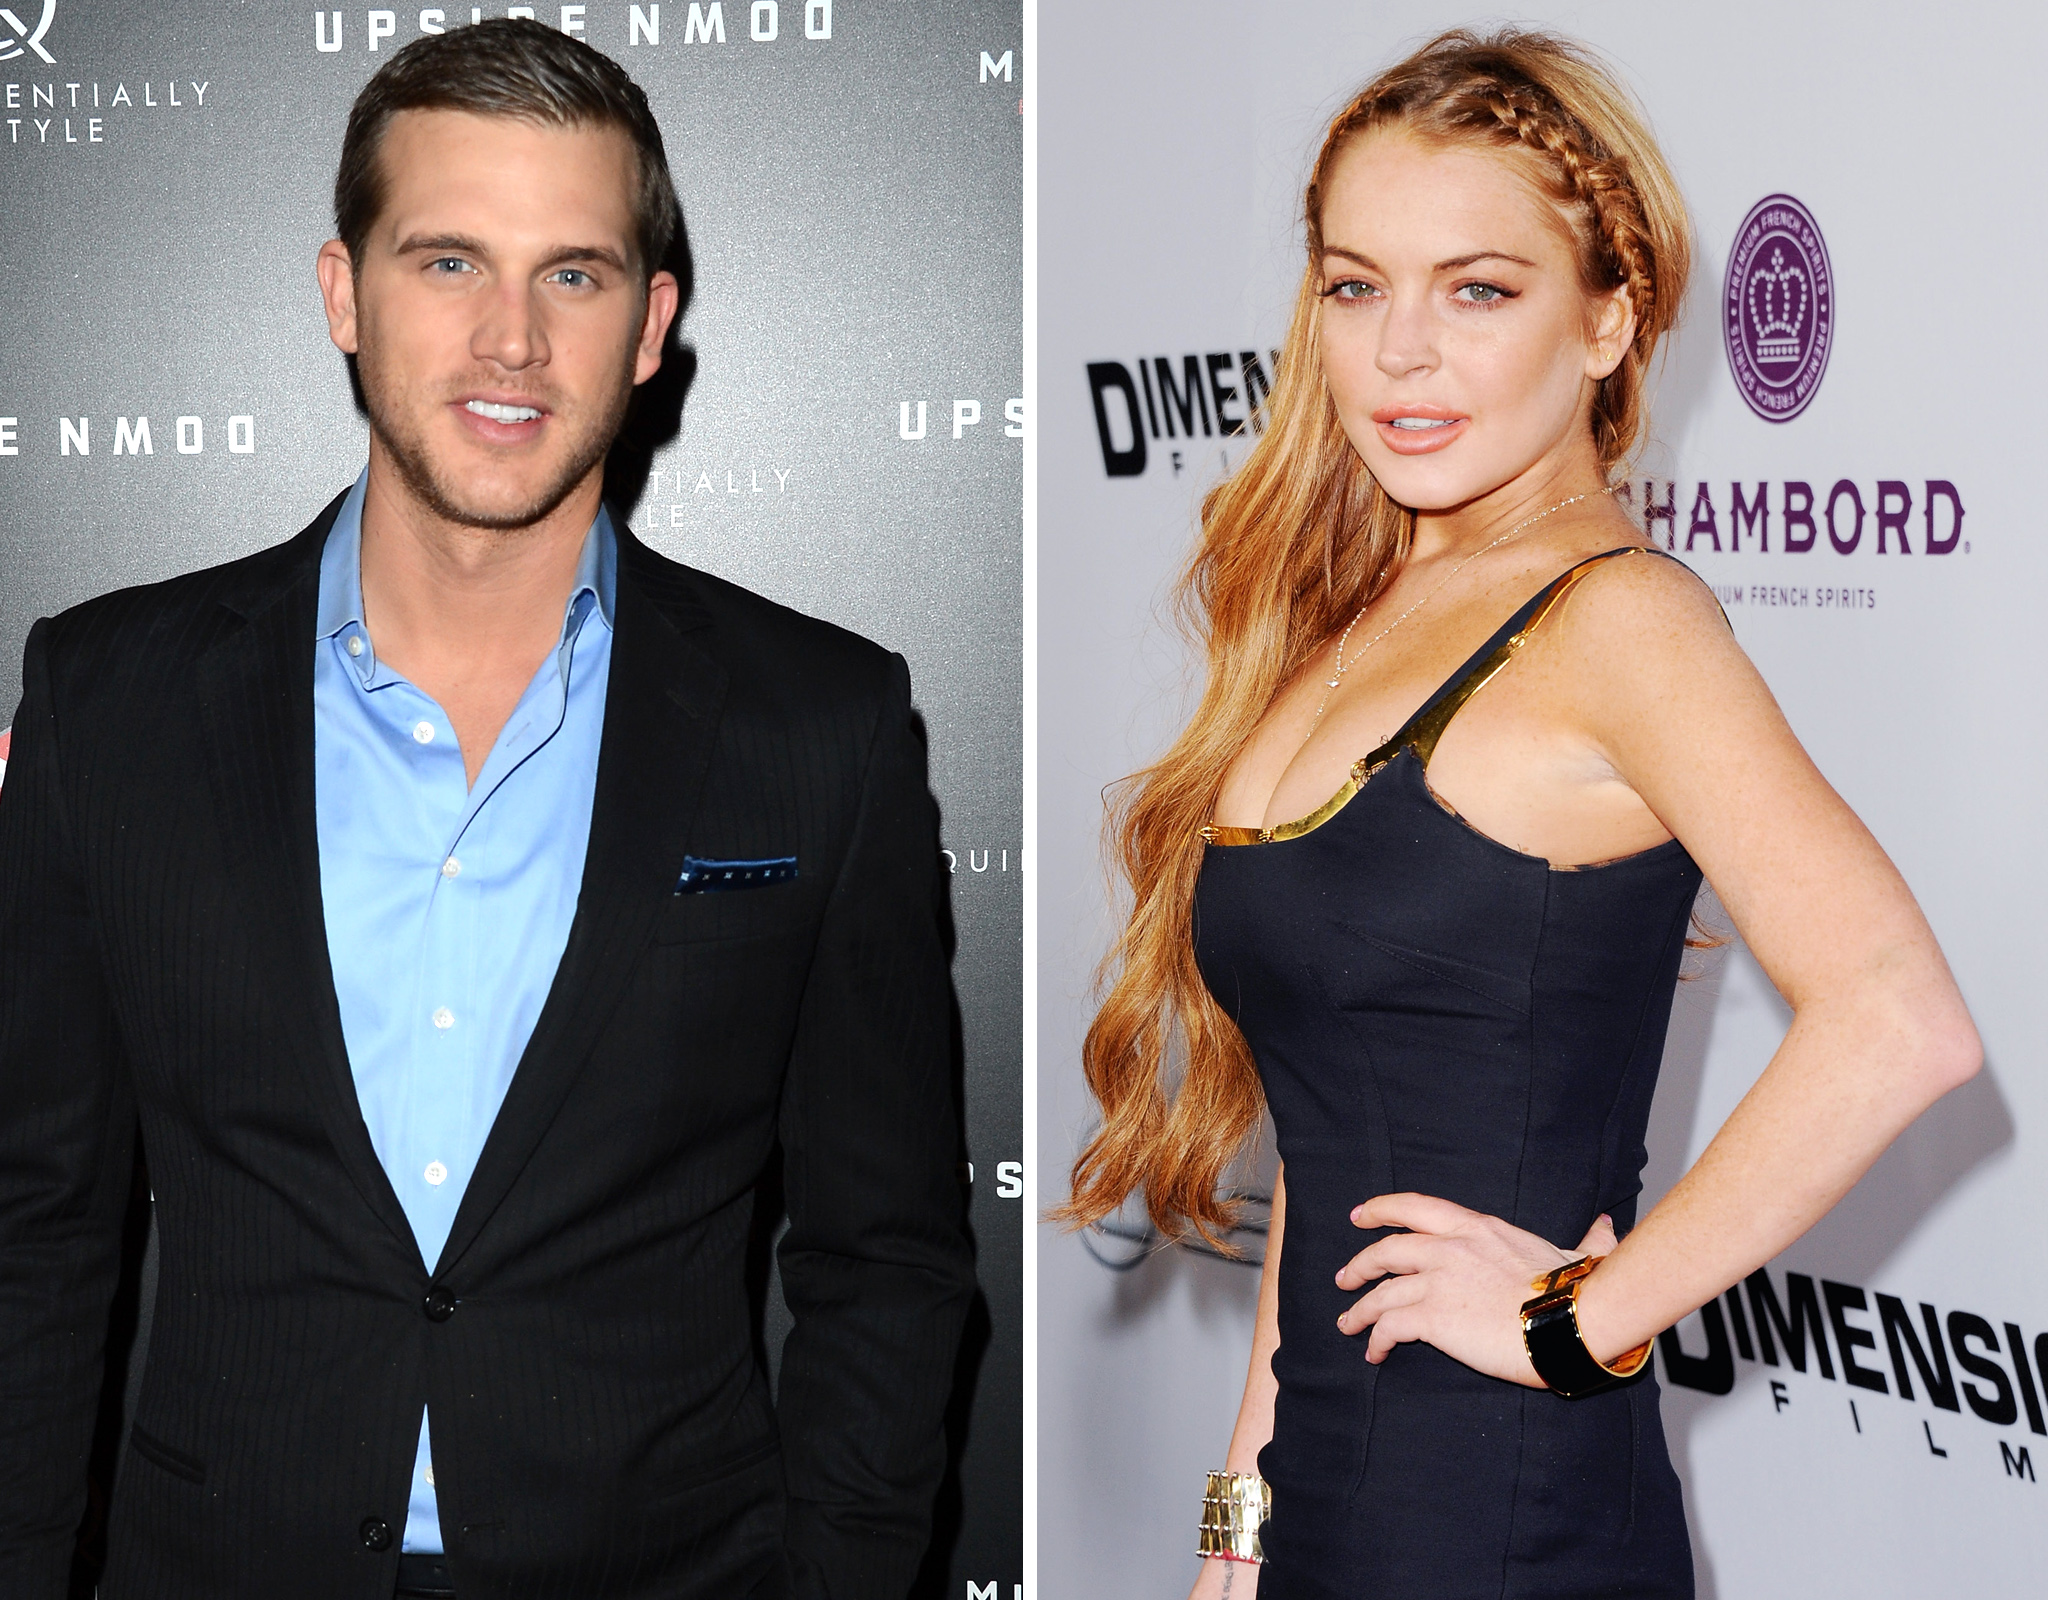 Matt Nordgren and Lindsay Lohan (FilmMagic/Getty Images)